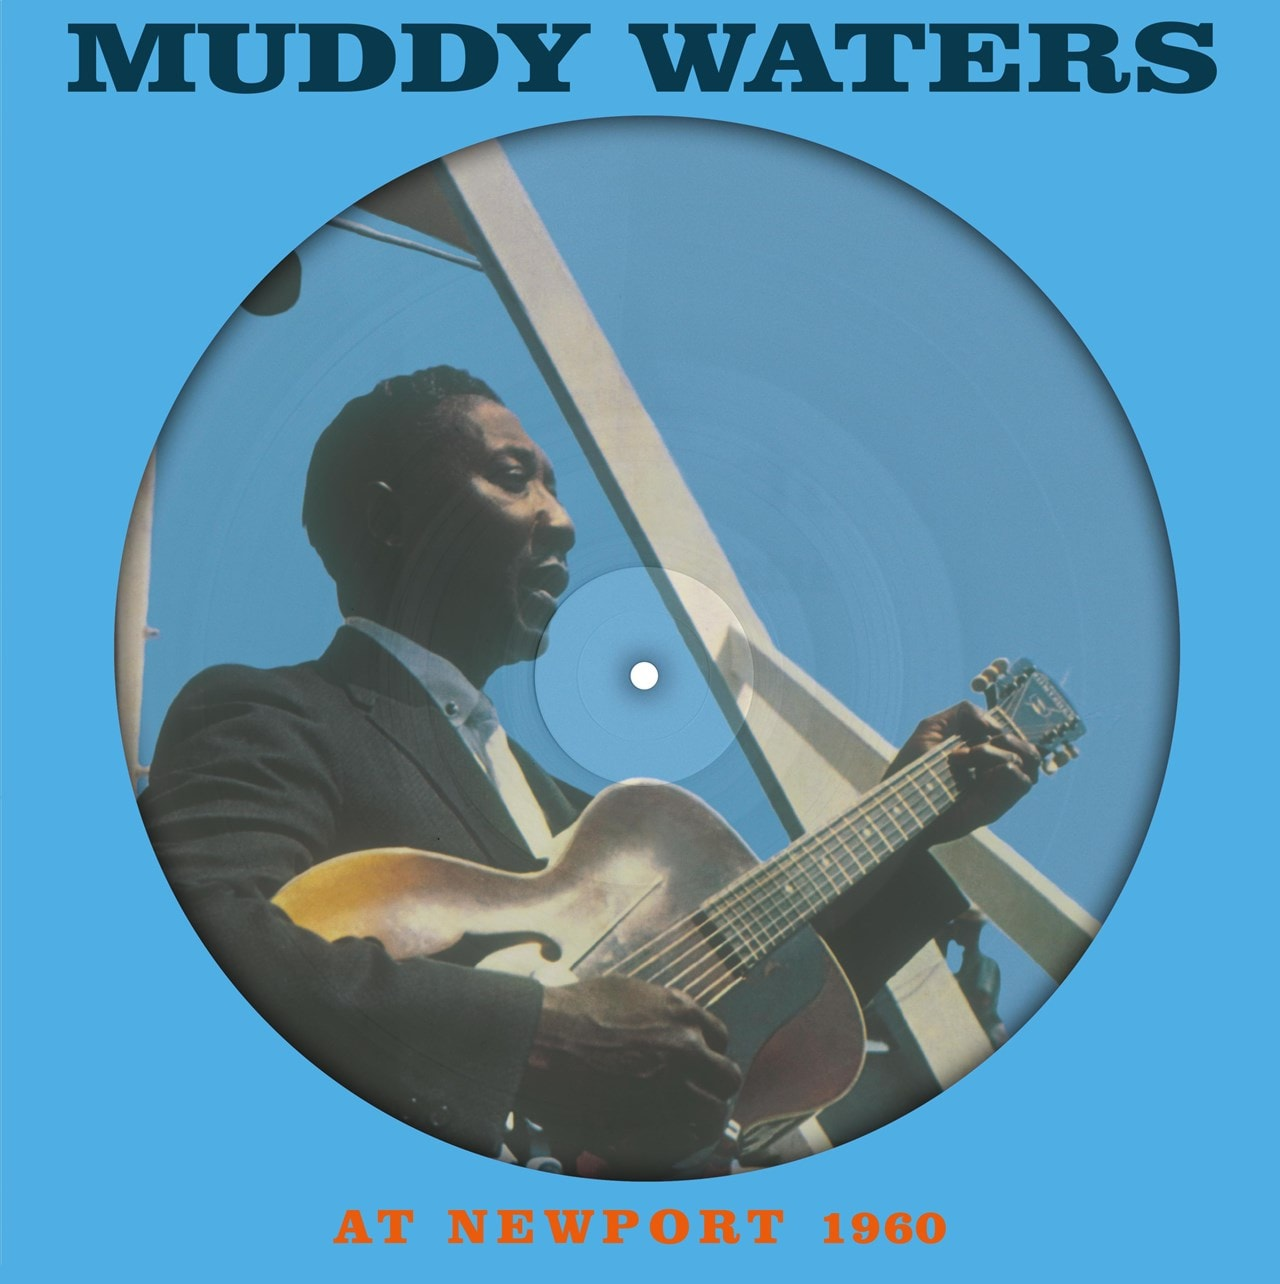 Muddy Waters at Newport 1960 - 1